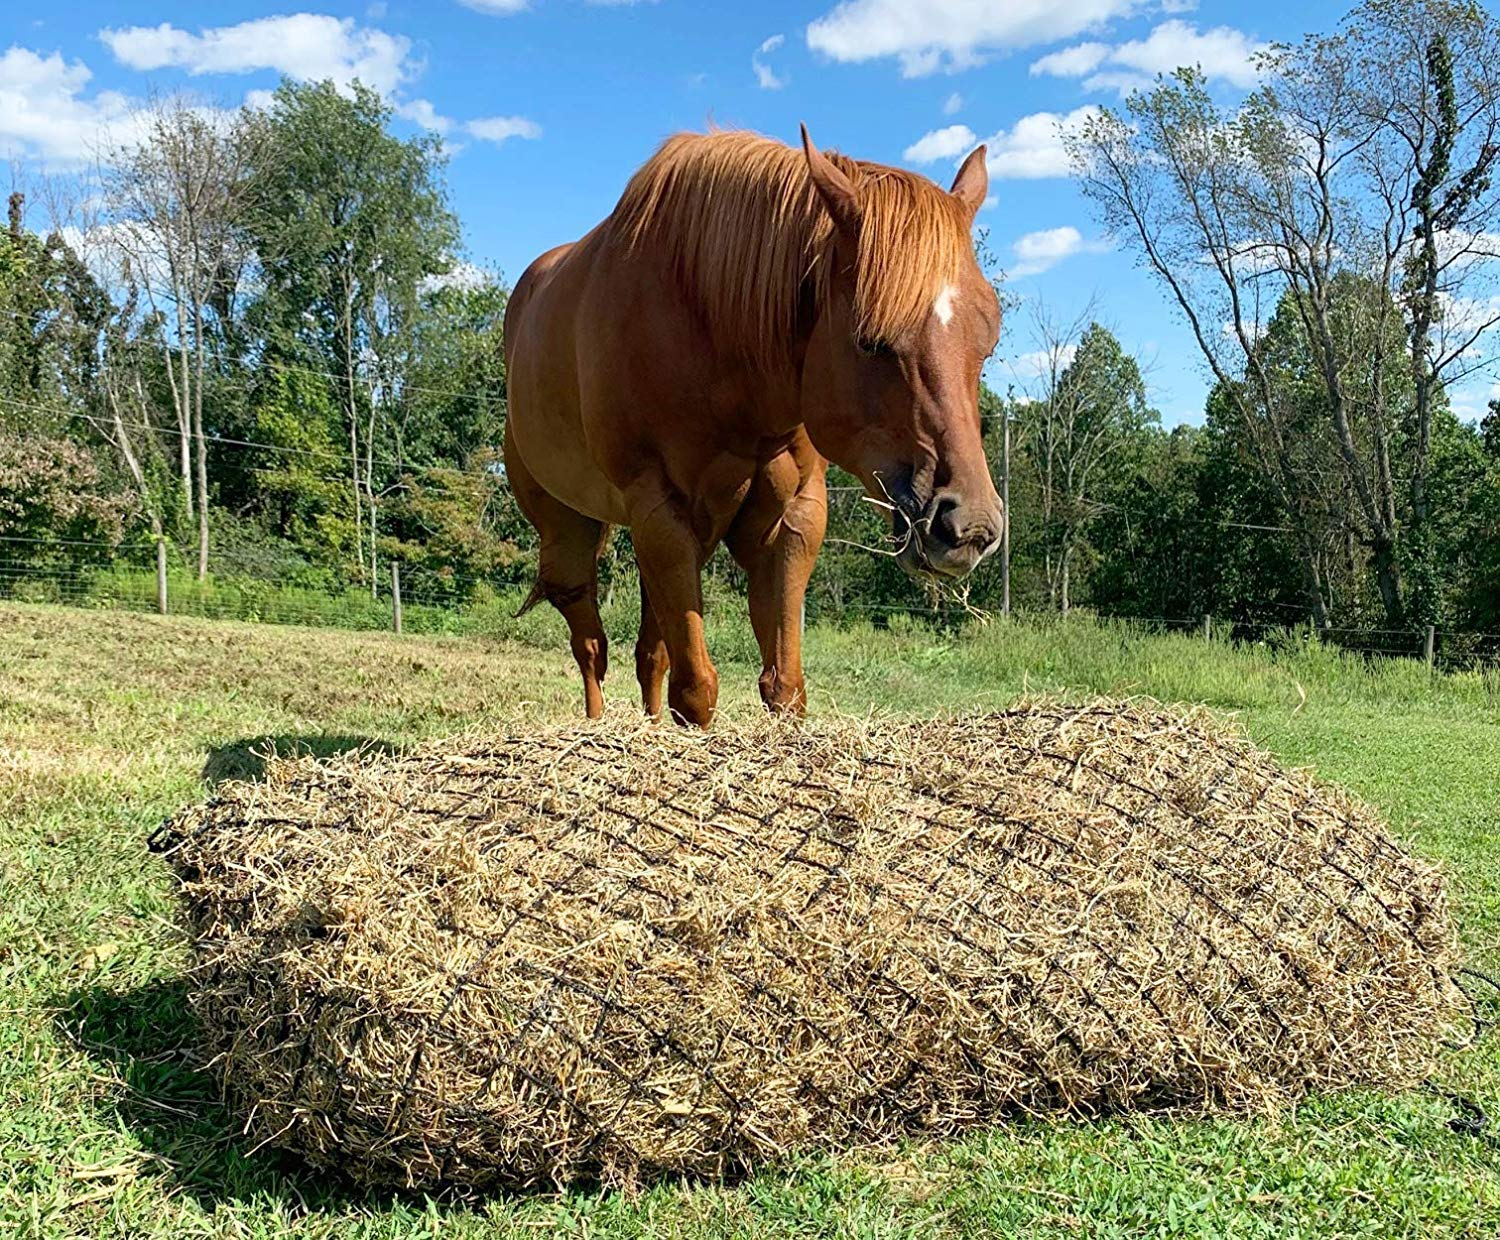 Derby Originals 57'' and 90'' Giant Slow Feed Hay Bale Nets and Sizes by Derby Originals